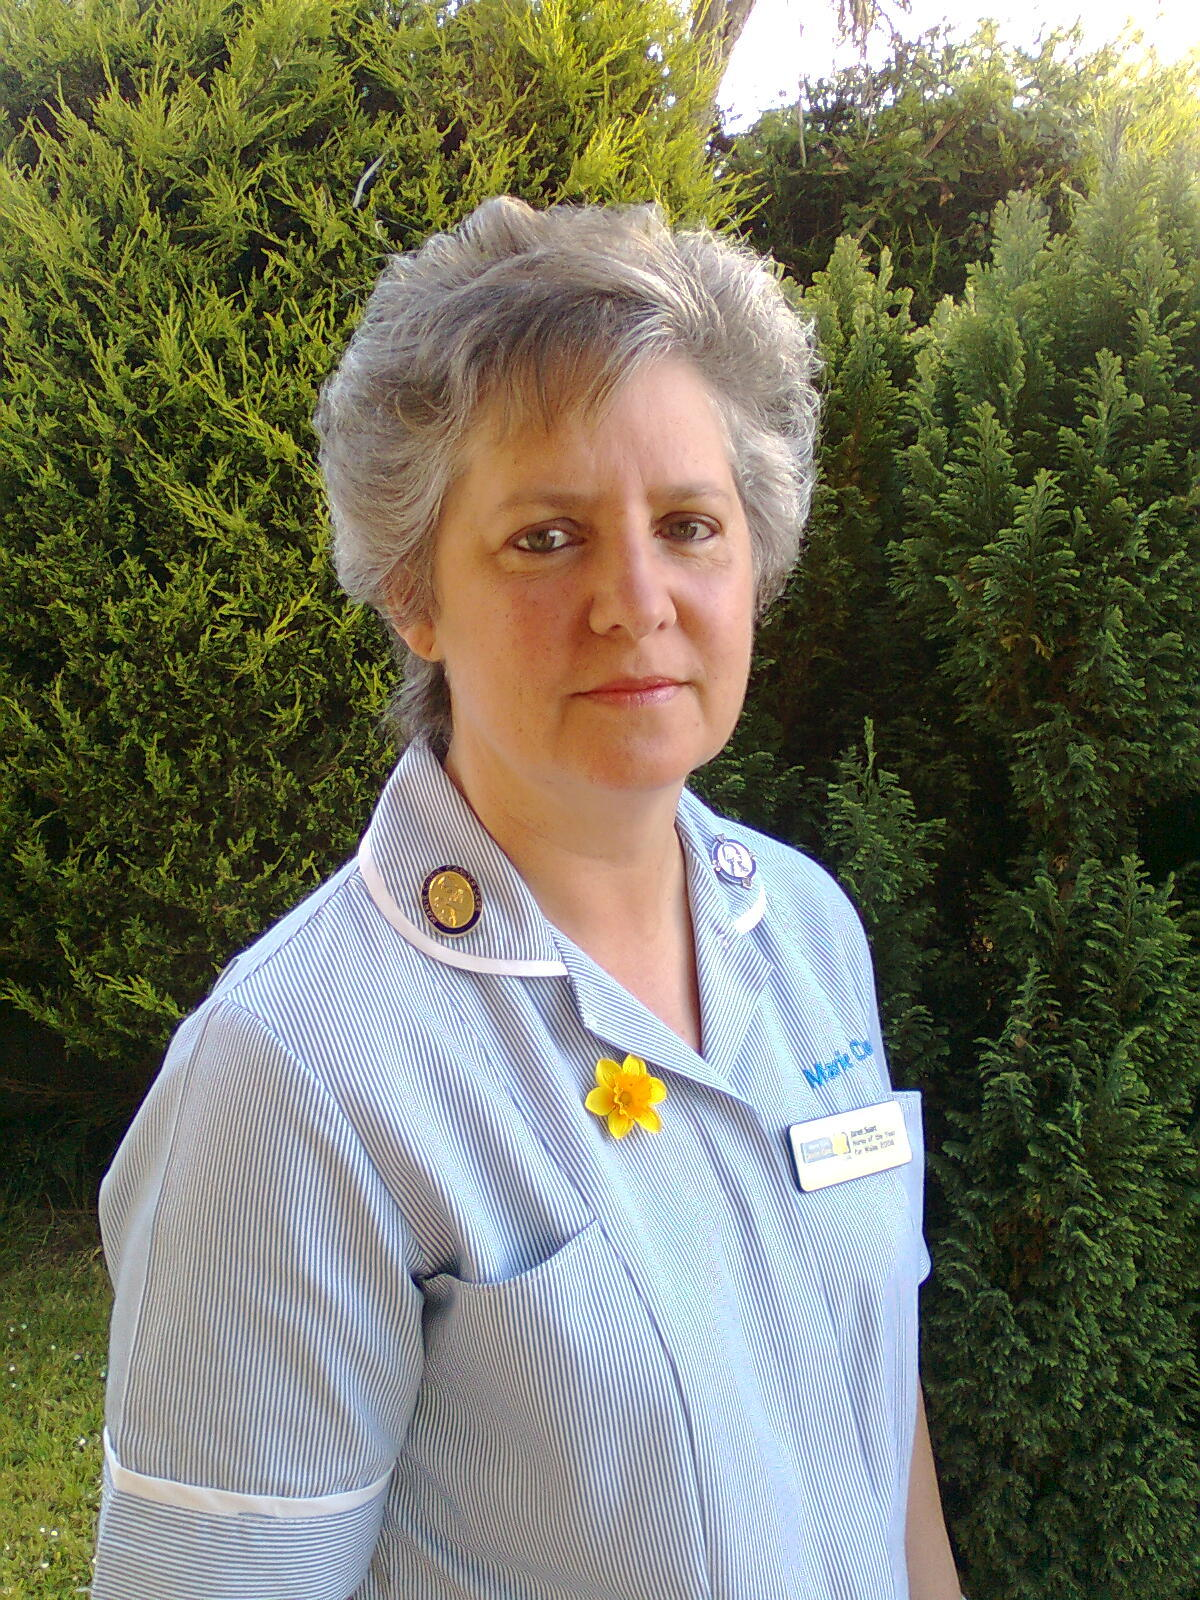 Janet Suart who recently retired from Marie Curie